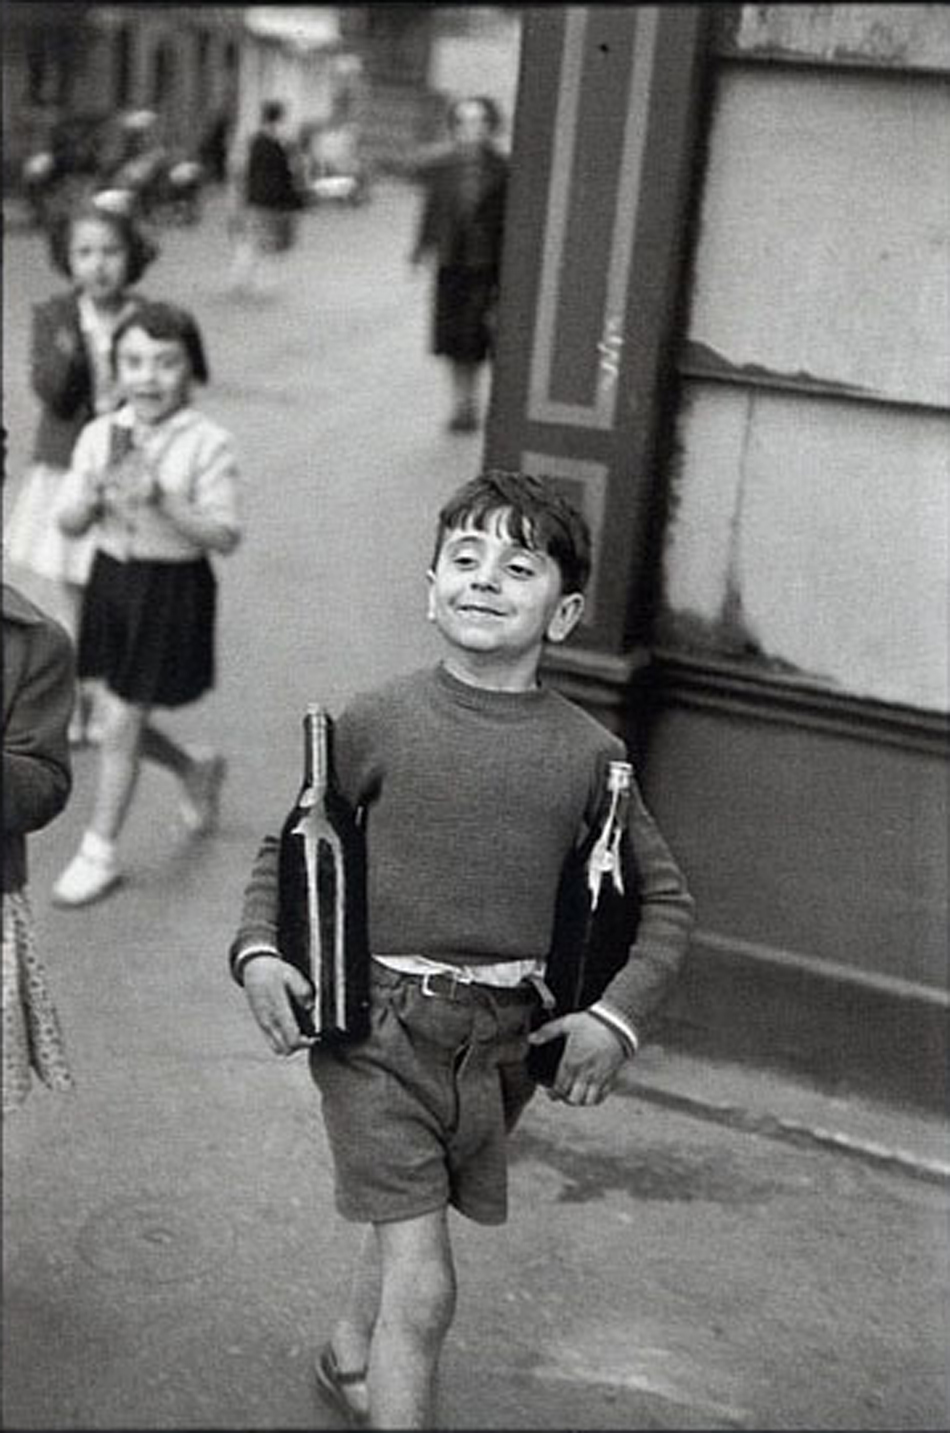 Photo by Henri Cartier-Bresson.